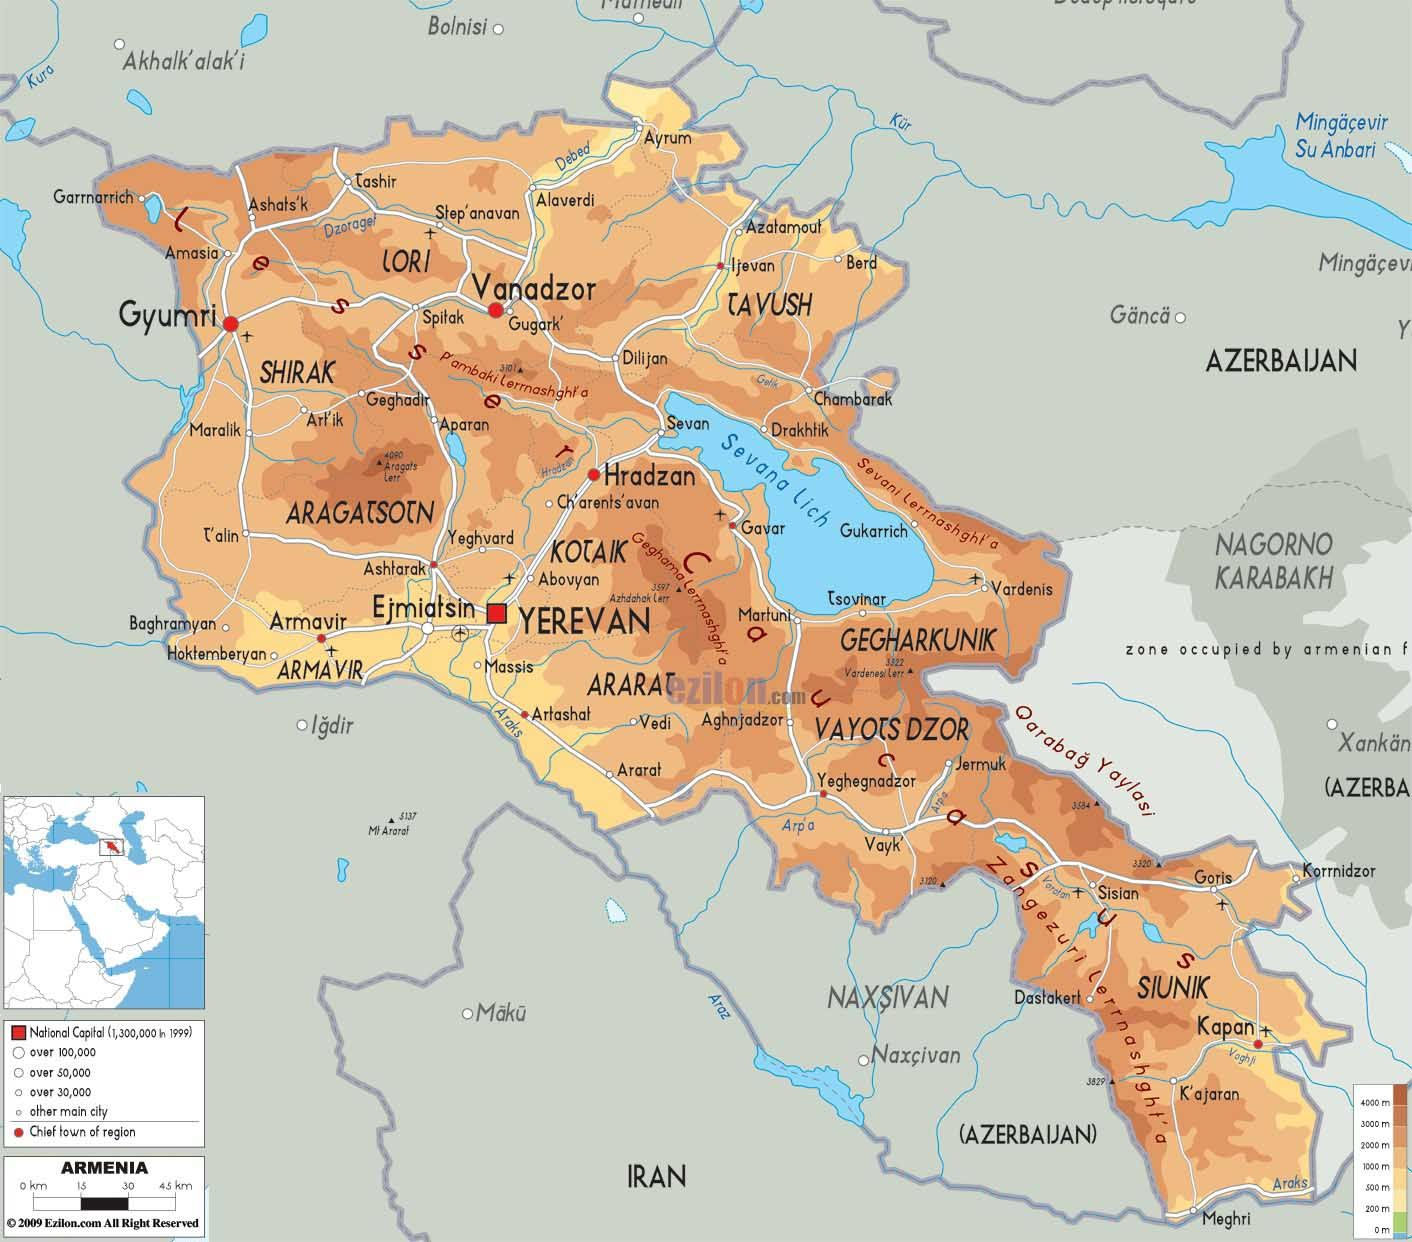 Pin by Jack Farmer on Maps of Armenia Pinterest Armenia